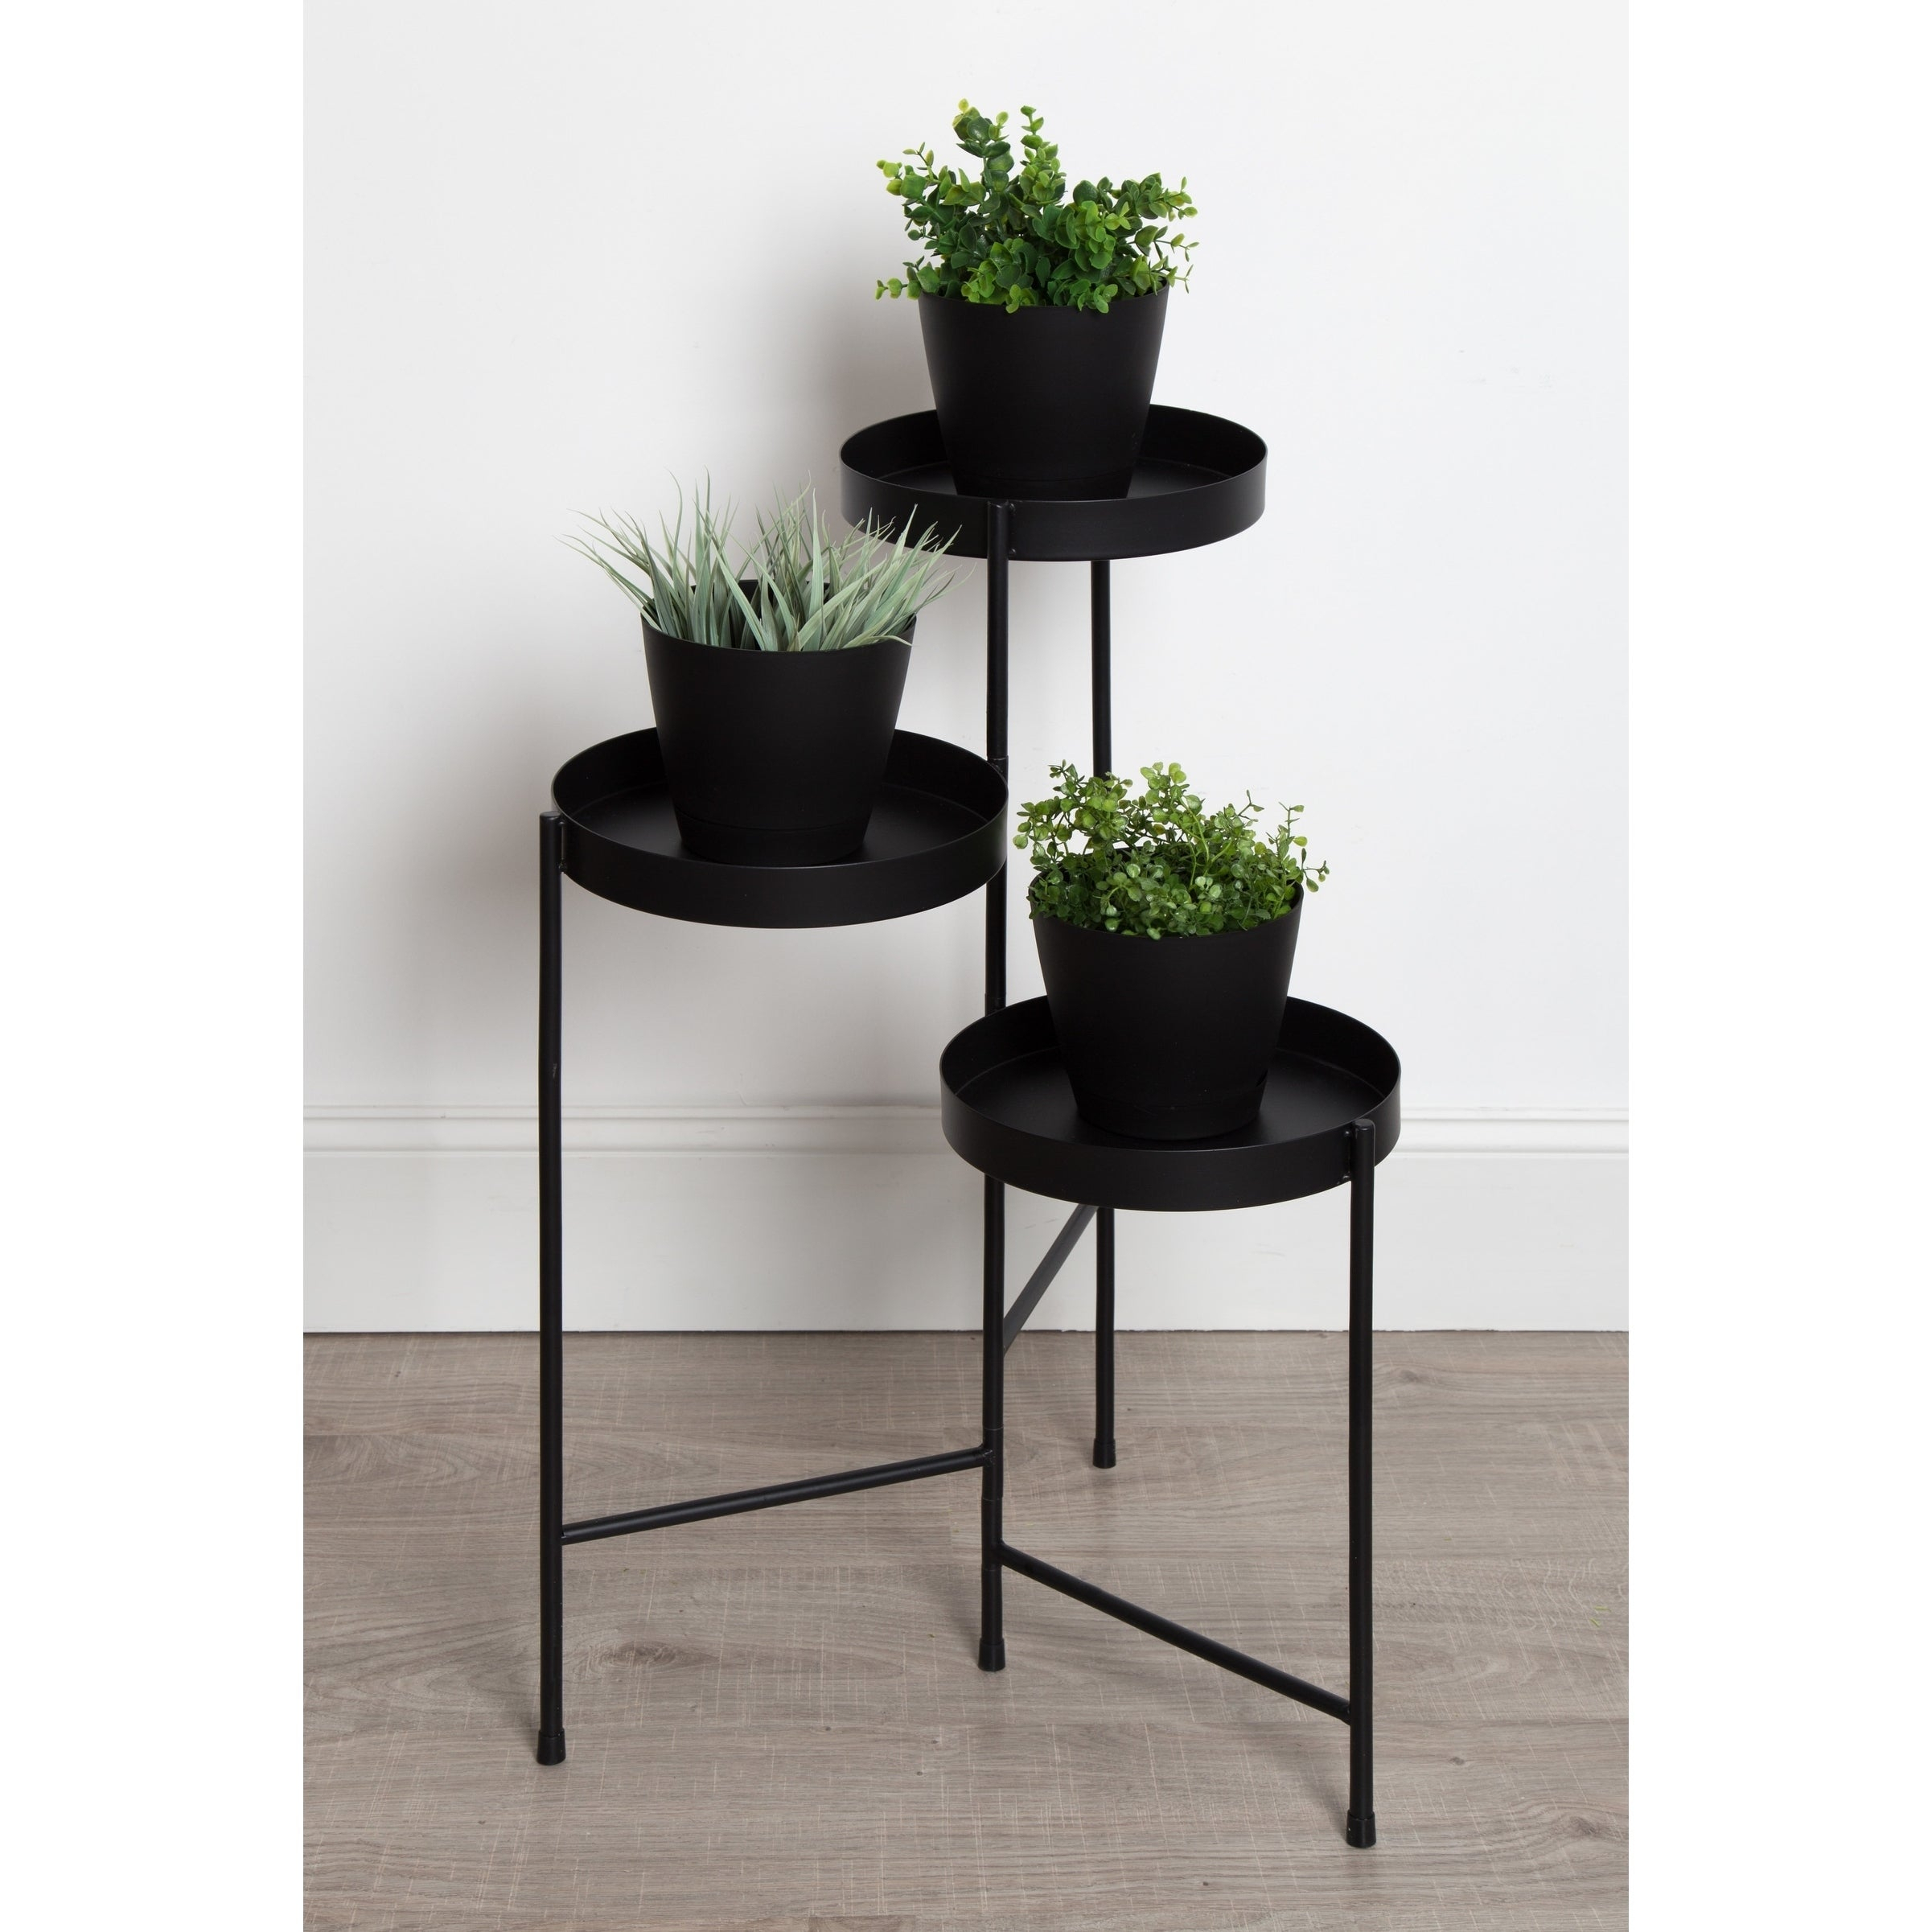 Planters, Hangers & Stands | Shop Online At Overstock in 2 Piece Trigg Wall Decor Sets (Set Of 2) (Image 15 of 30)